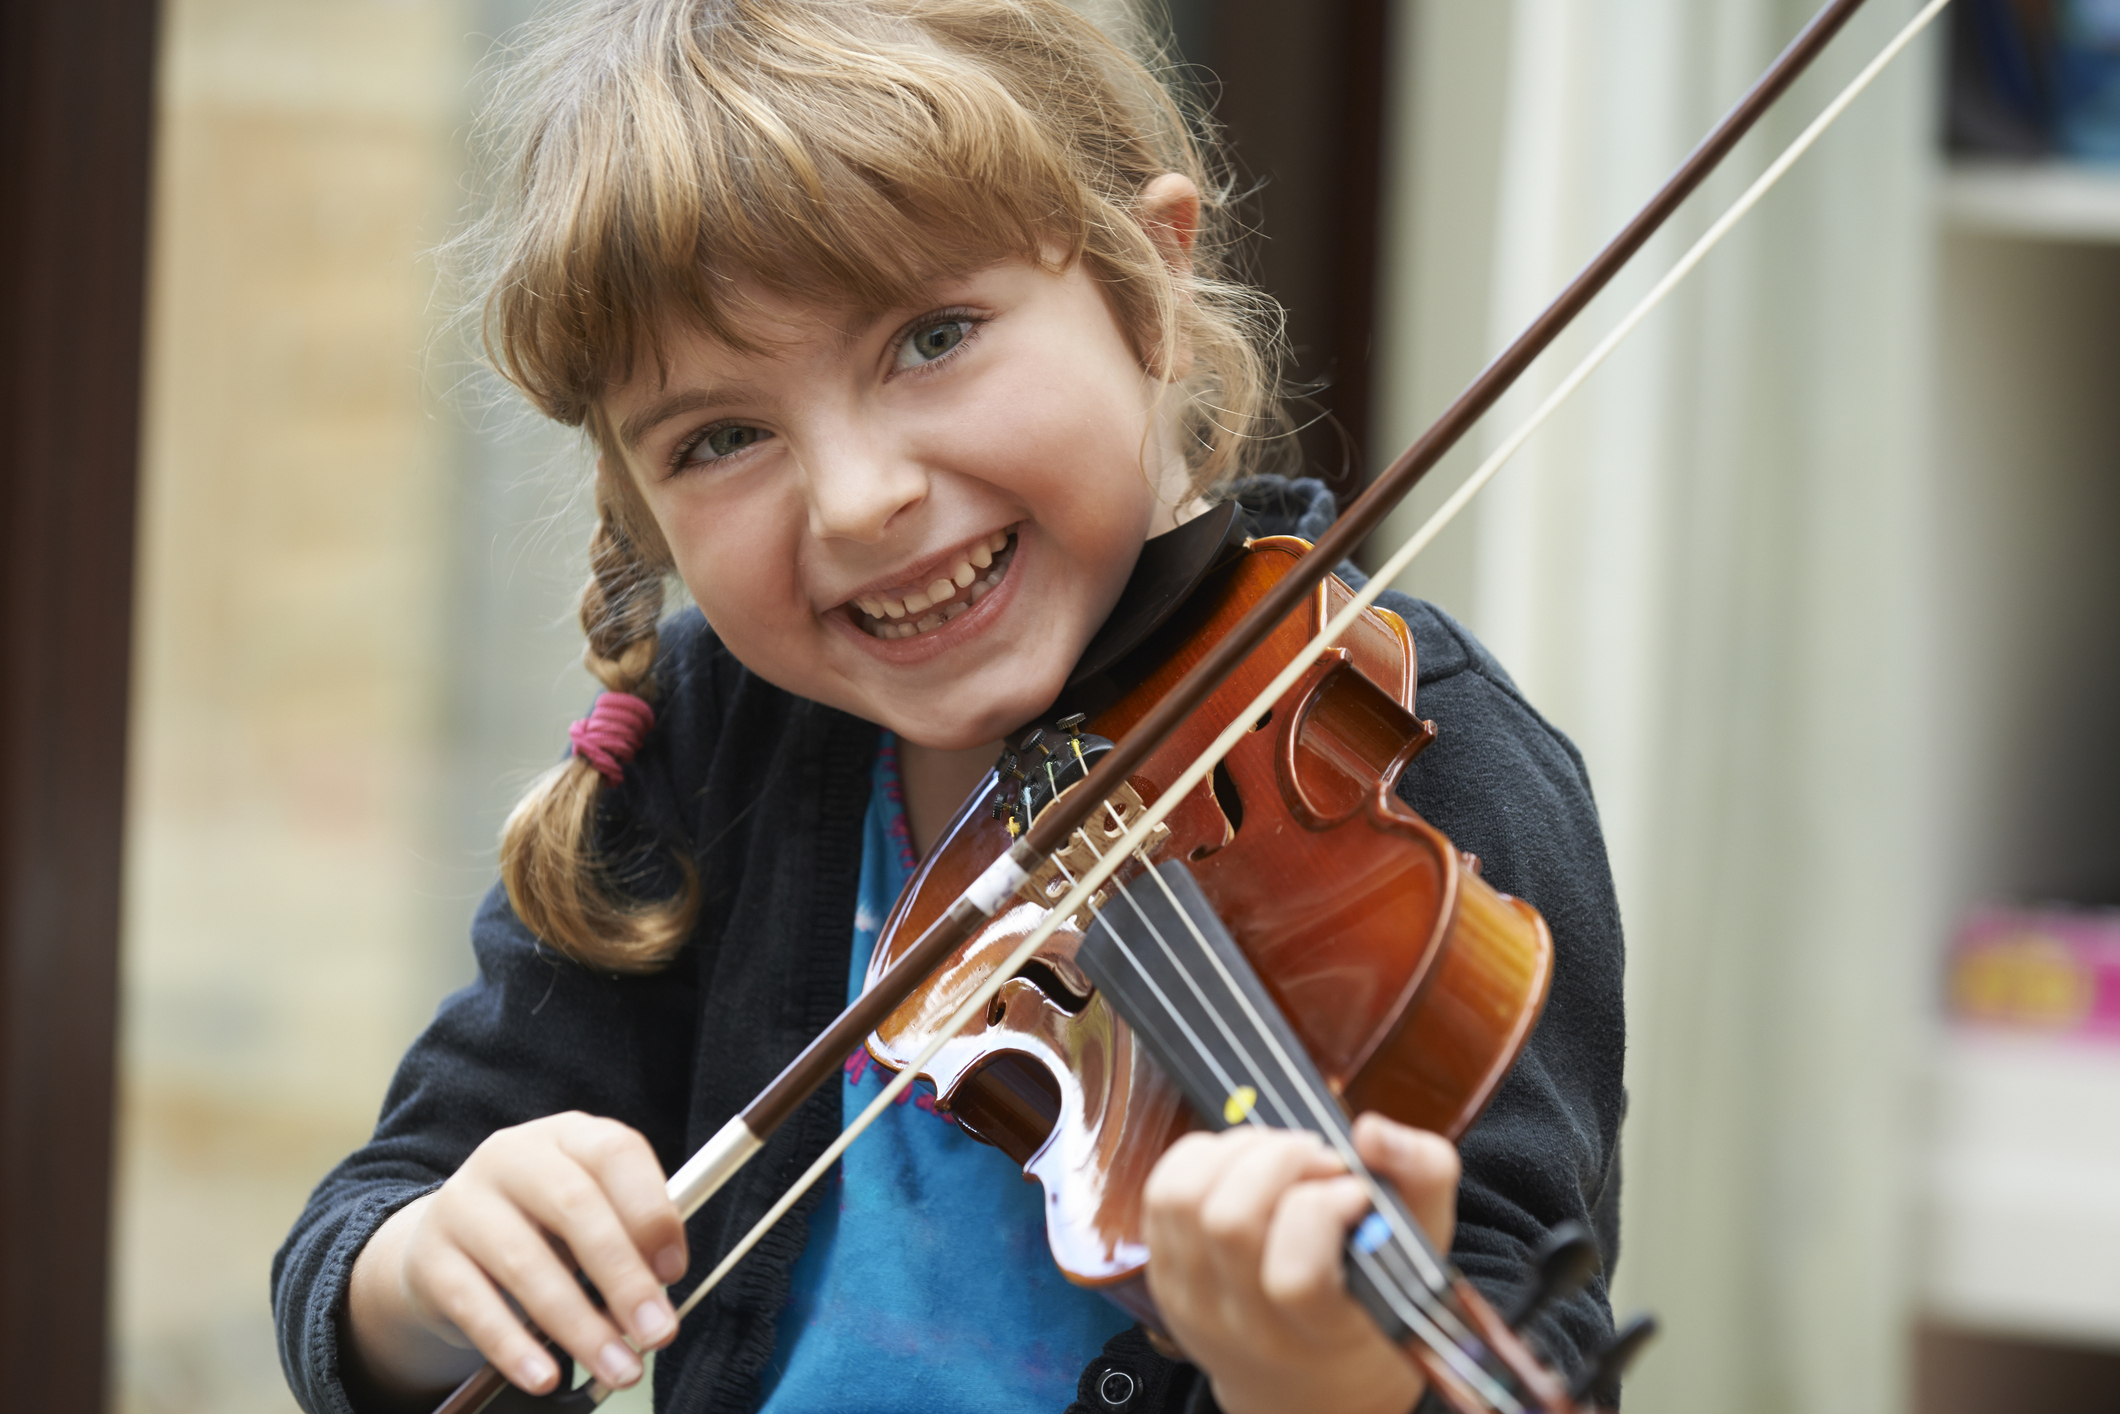 Rentals - Players seeking a rental instrument with the richest, warmest possible tone, combined with the extraordinary handling and playing characteristics of an owned instrument choose to rent from McLaughlin Violins because of our attention to selection, detail and upkeep.